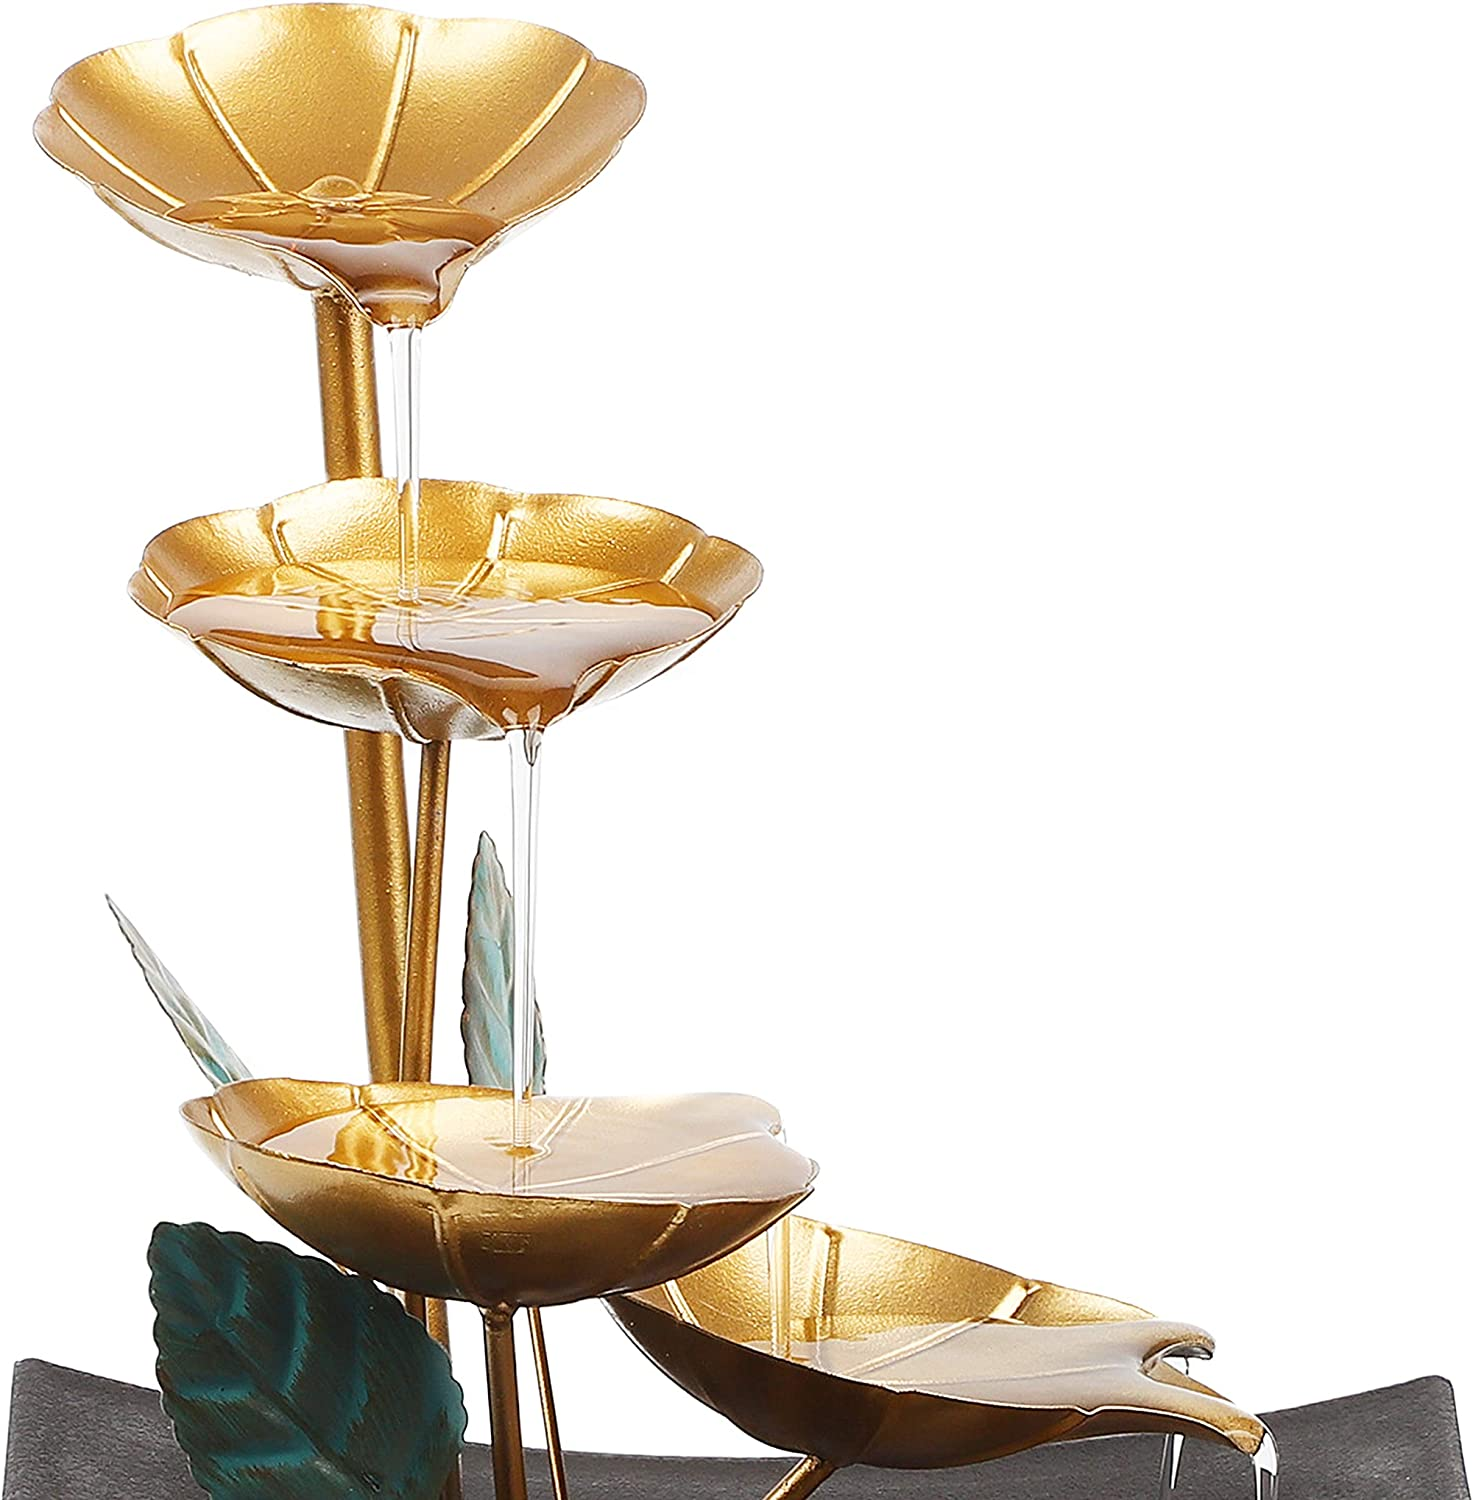 Ferrisland Lily Waterfall Fountain Indoor Tabletop Fountain Water Over Metal Flowers and Leaves, Electric Pump, Soothing Calming and Relaxing Water Sound for Home Décor: Home & Kitchen